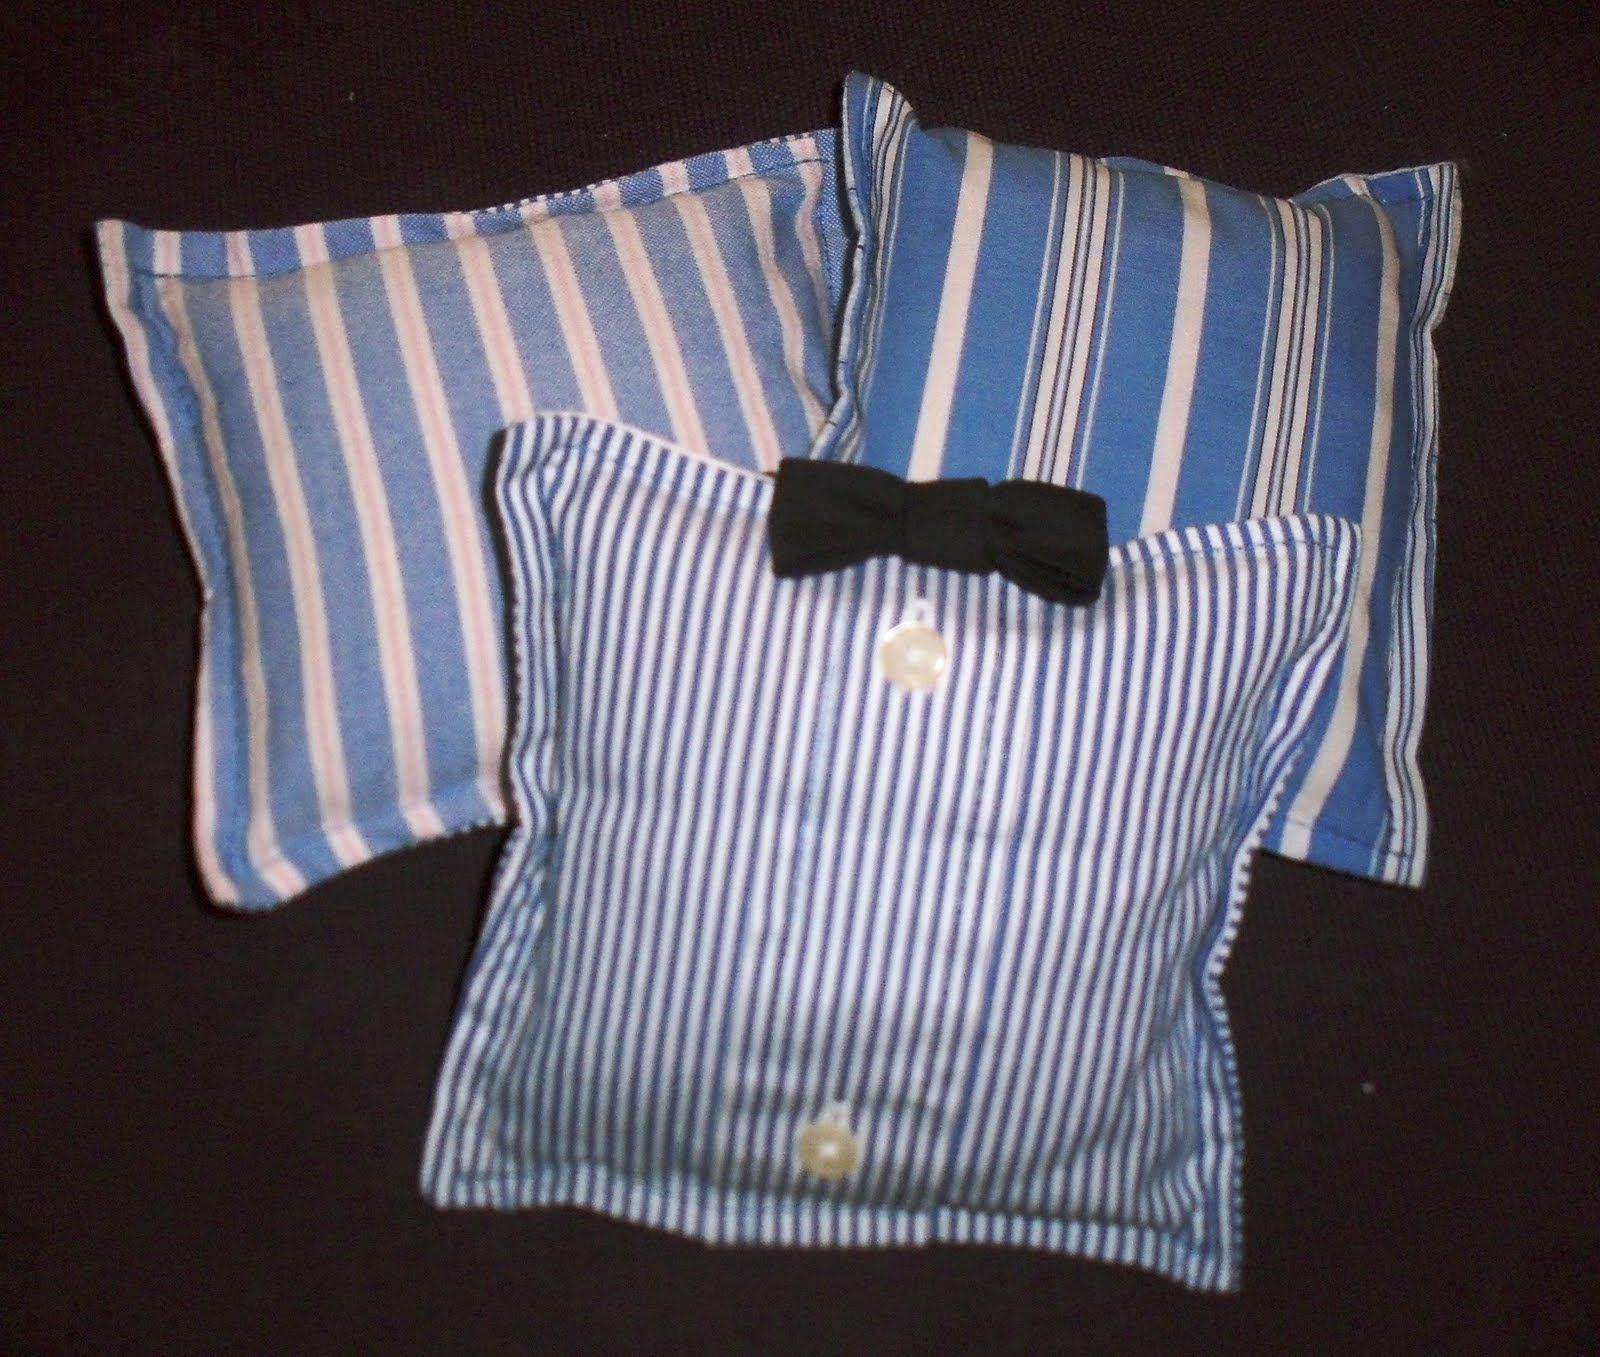 Upcycle Shirt Pillows Wash The Shirts Thoroughly With Unscented